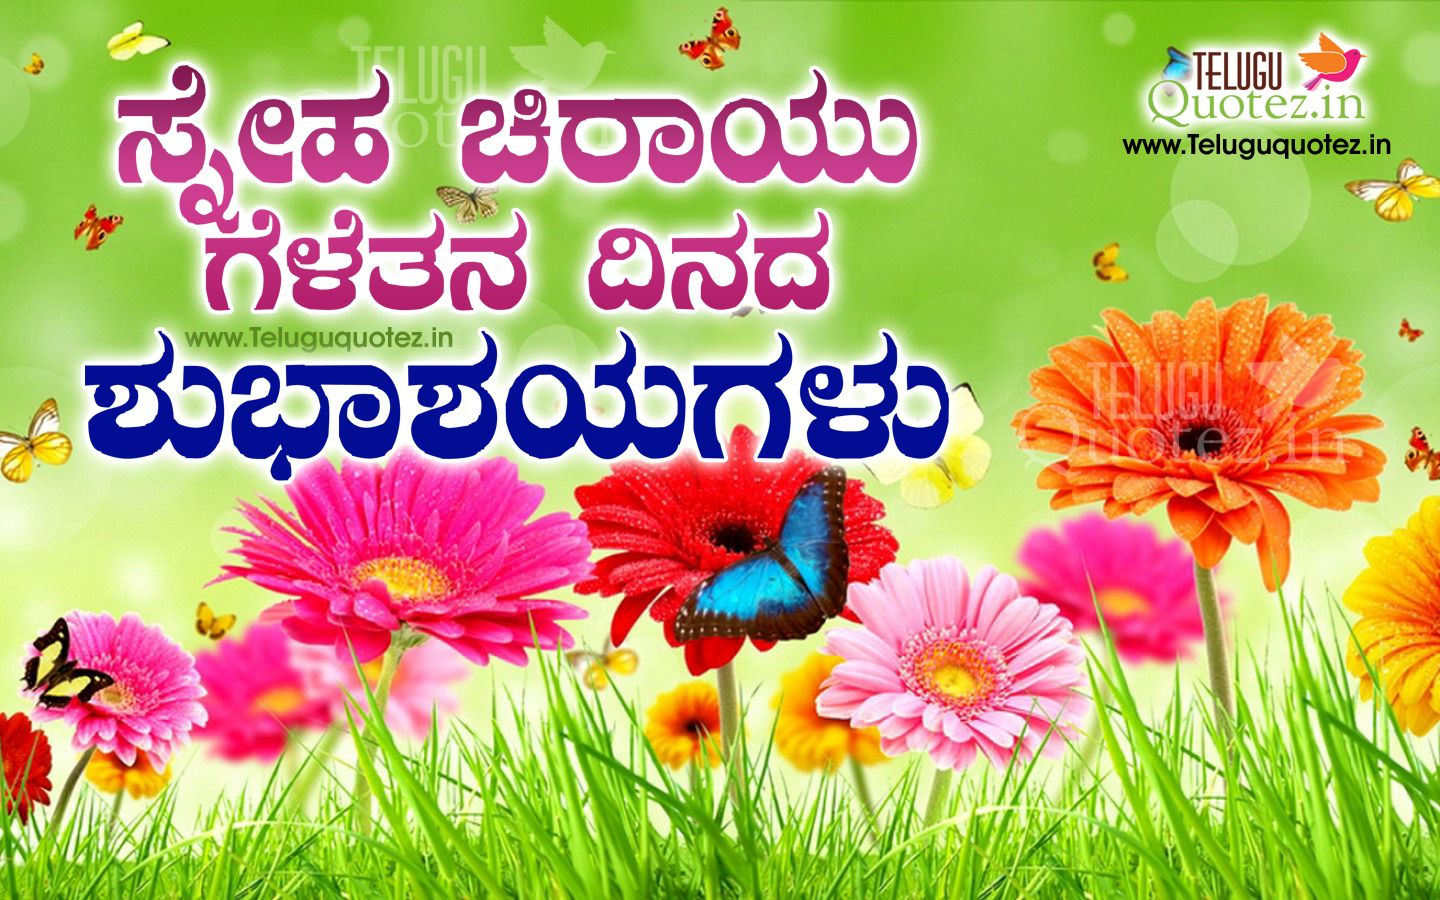 Happy Friendship Day Sms Message In Kannada Font 02aug Teluguquotez